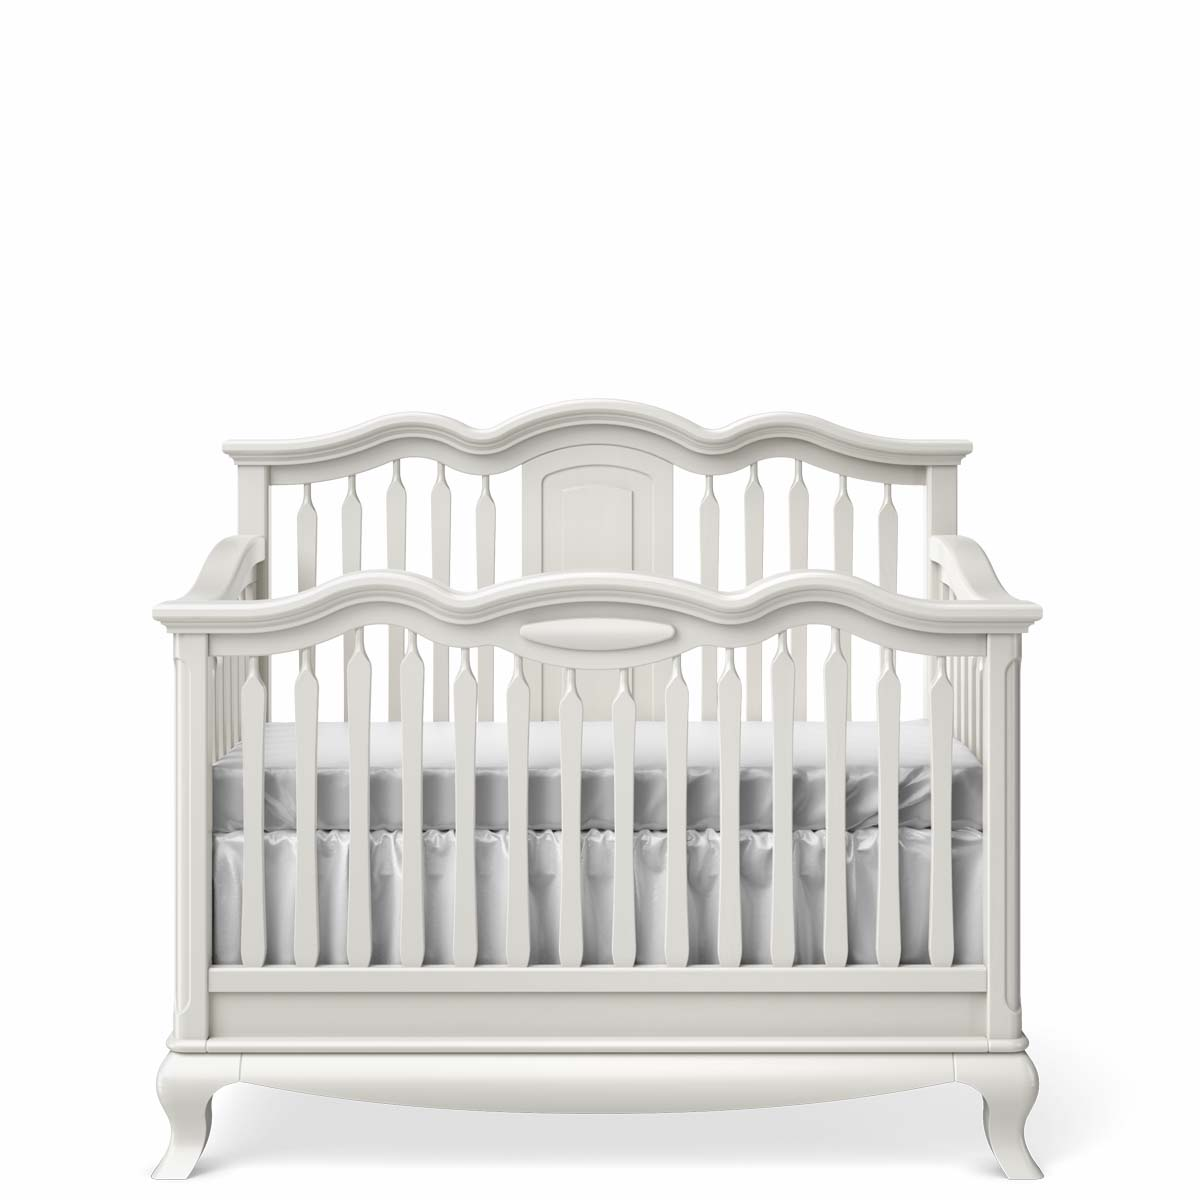 Romina Furniture Cleopatra Convertible Crib